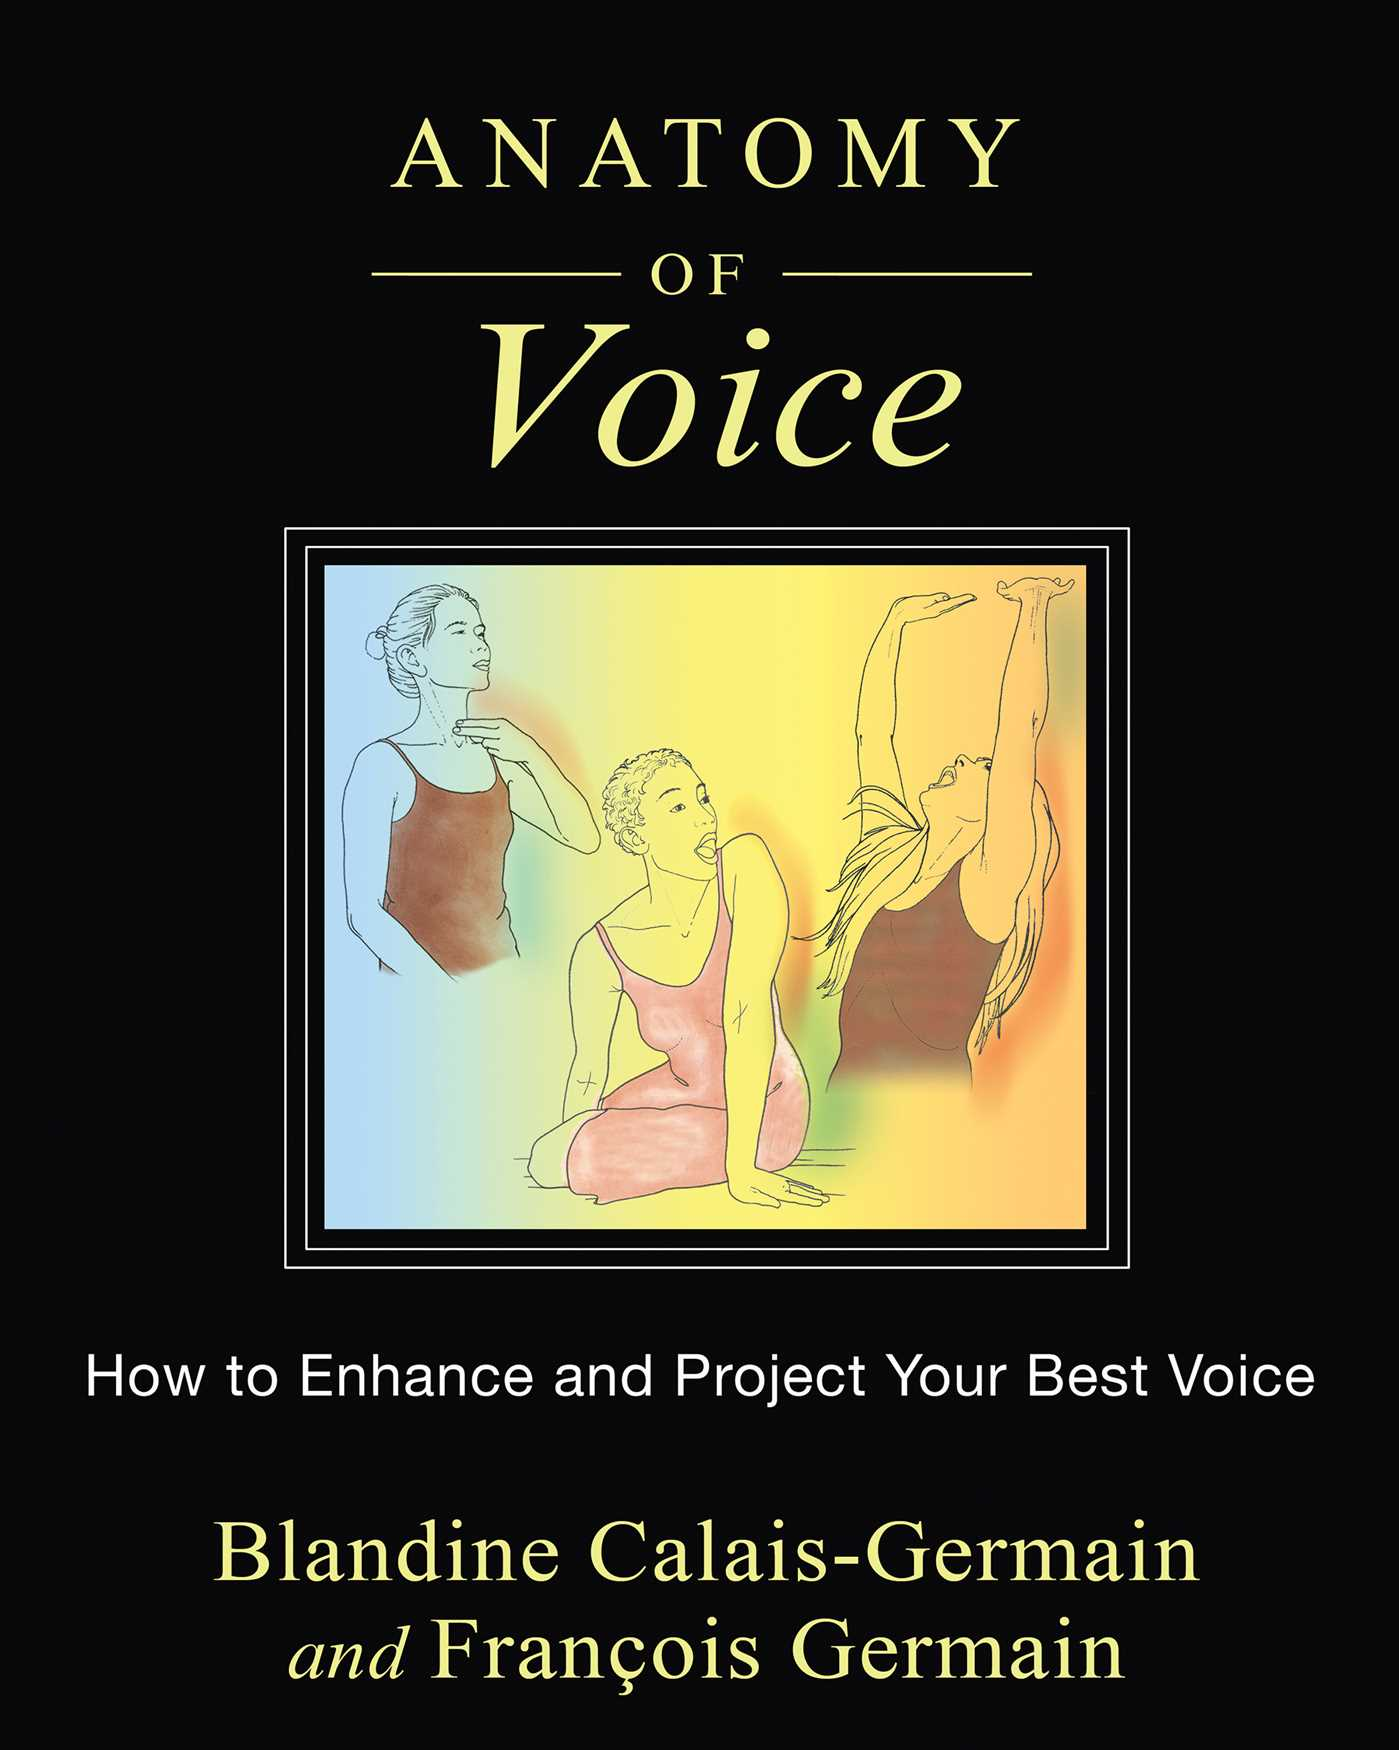 Anatomy of voice 9781620554197 hr